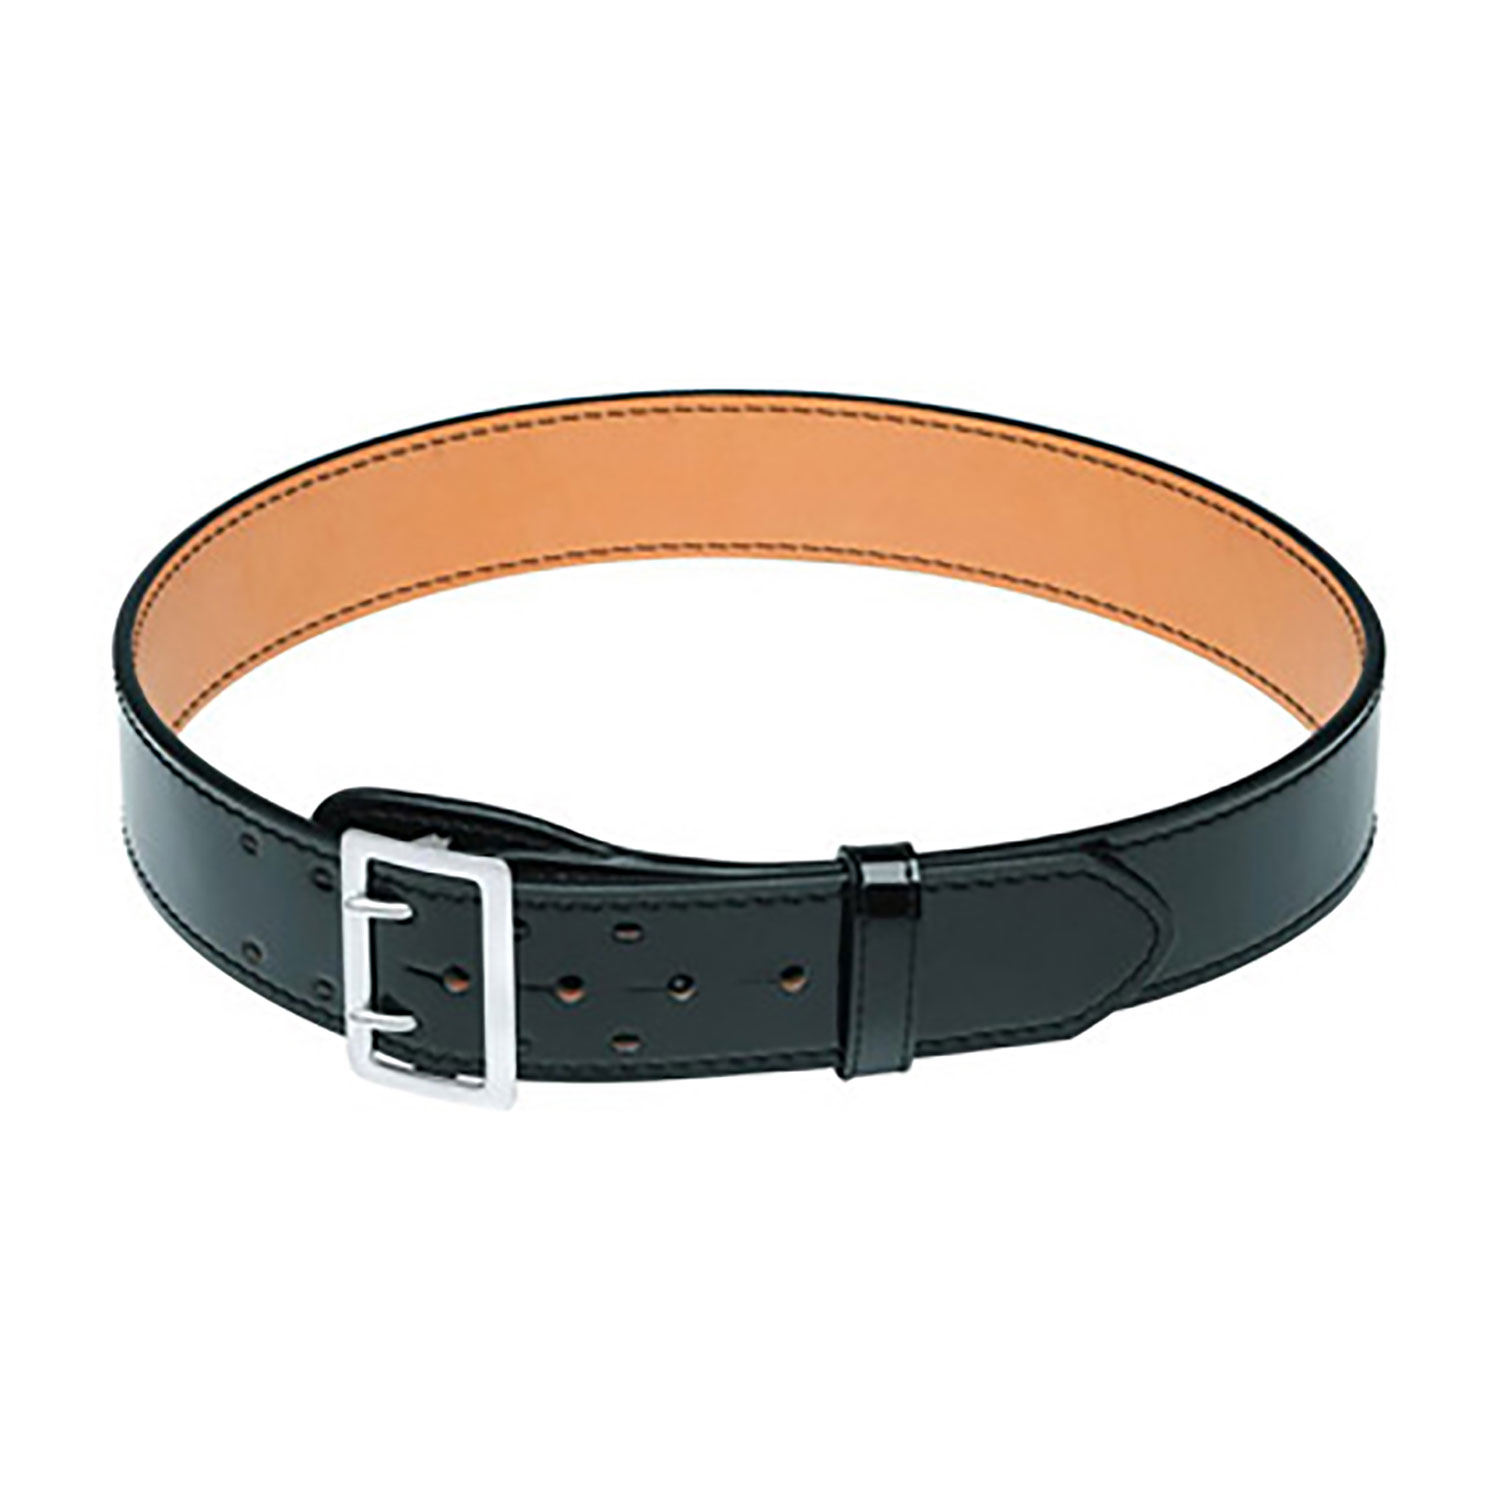 Gould & Goodrich Sam Browne Belt